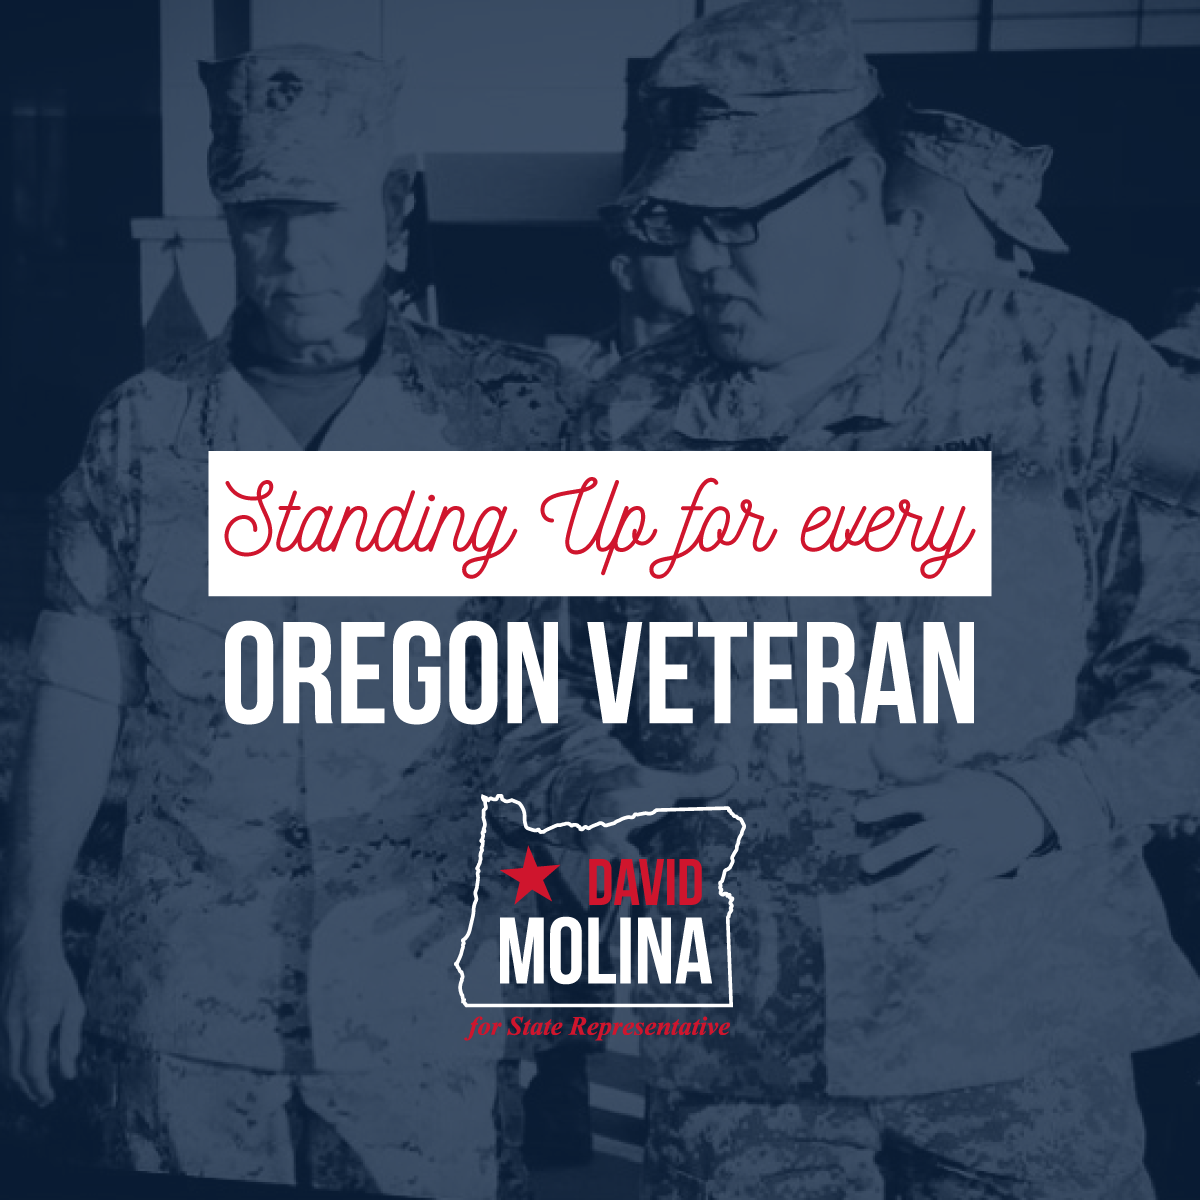 Former Army Captain David Molina founded a national veterans nonprofit after he couldn't use his New GI Bill to go to code school. Let's send him to Salem